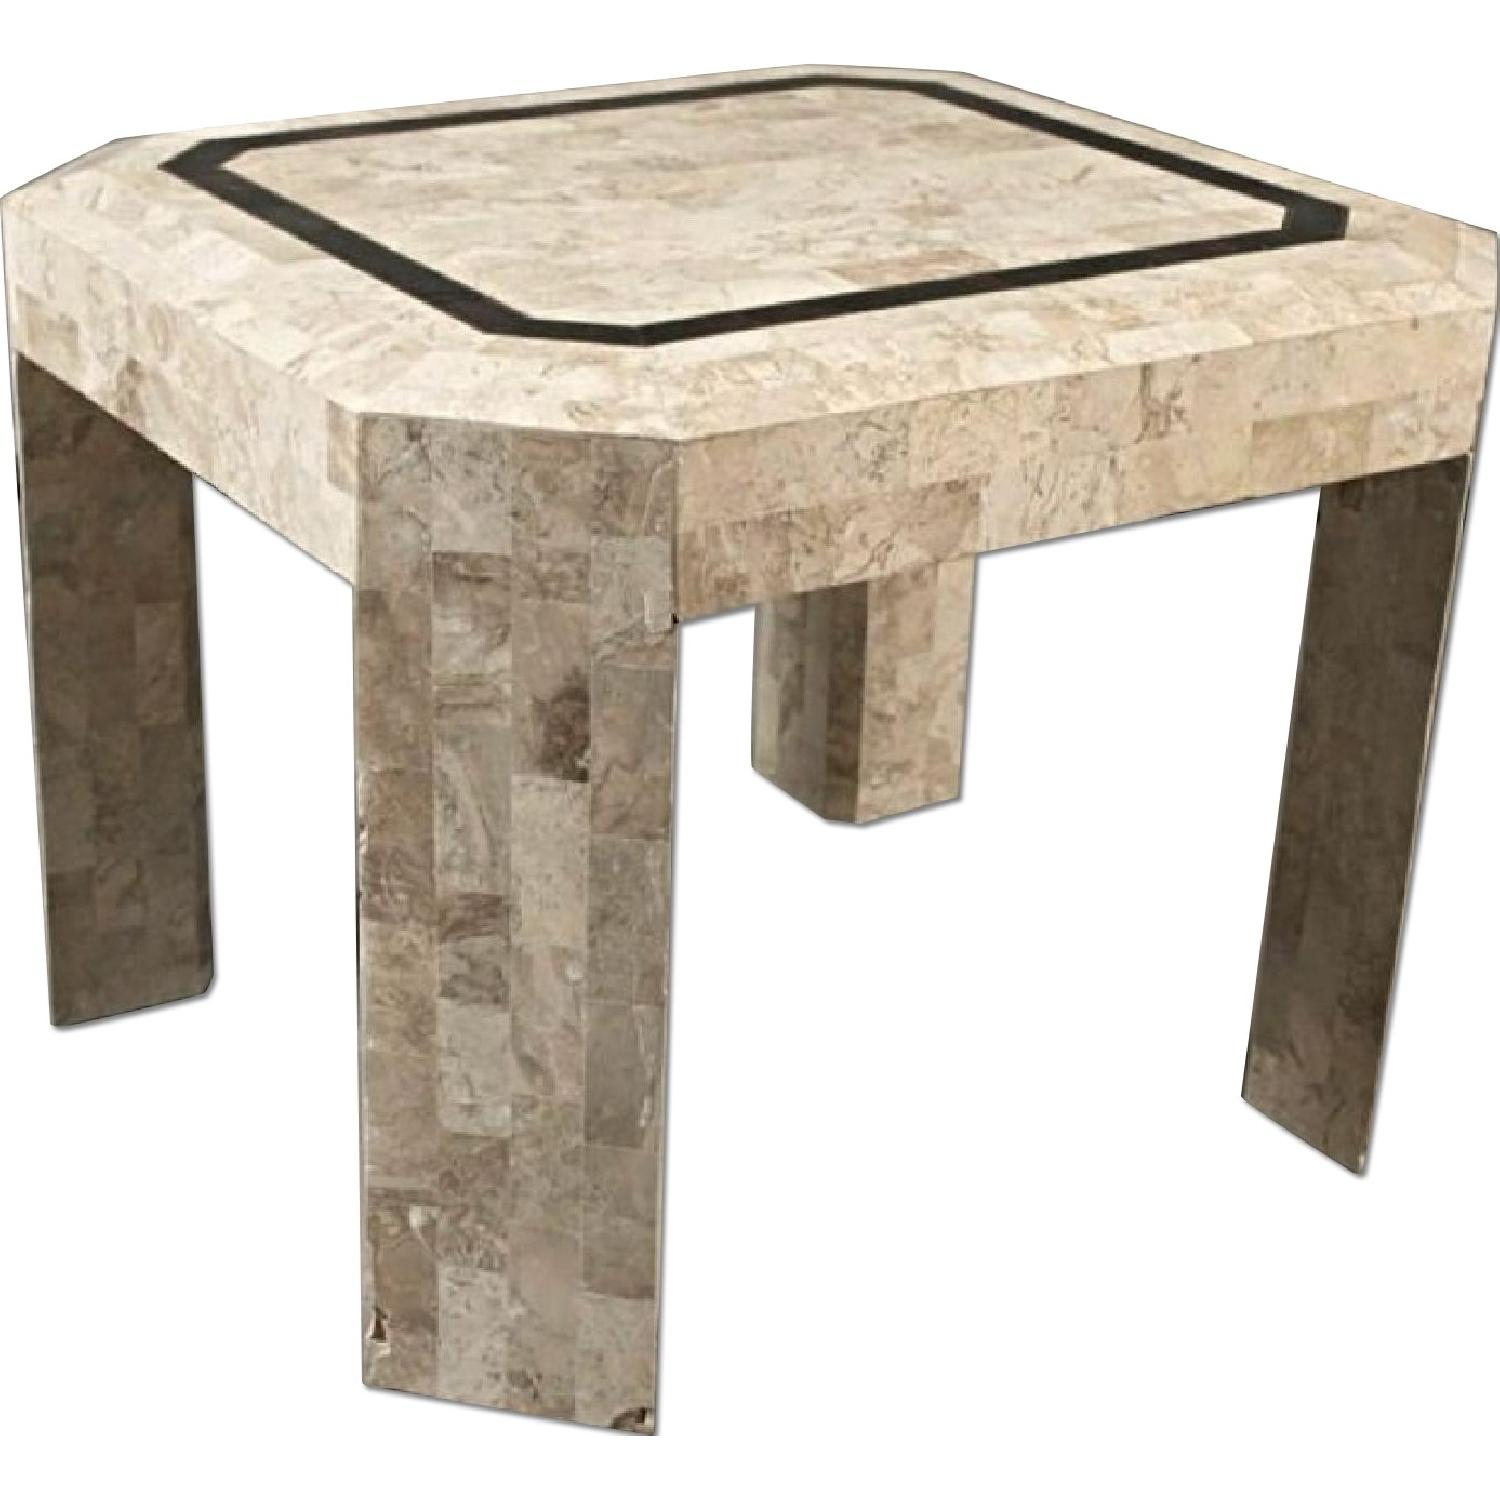 Maitland Smith Neoclassical Stone Clad Coffee Side/End Table